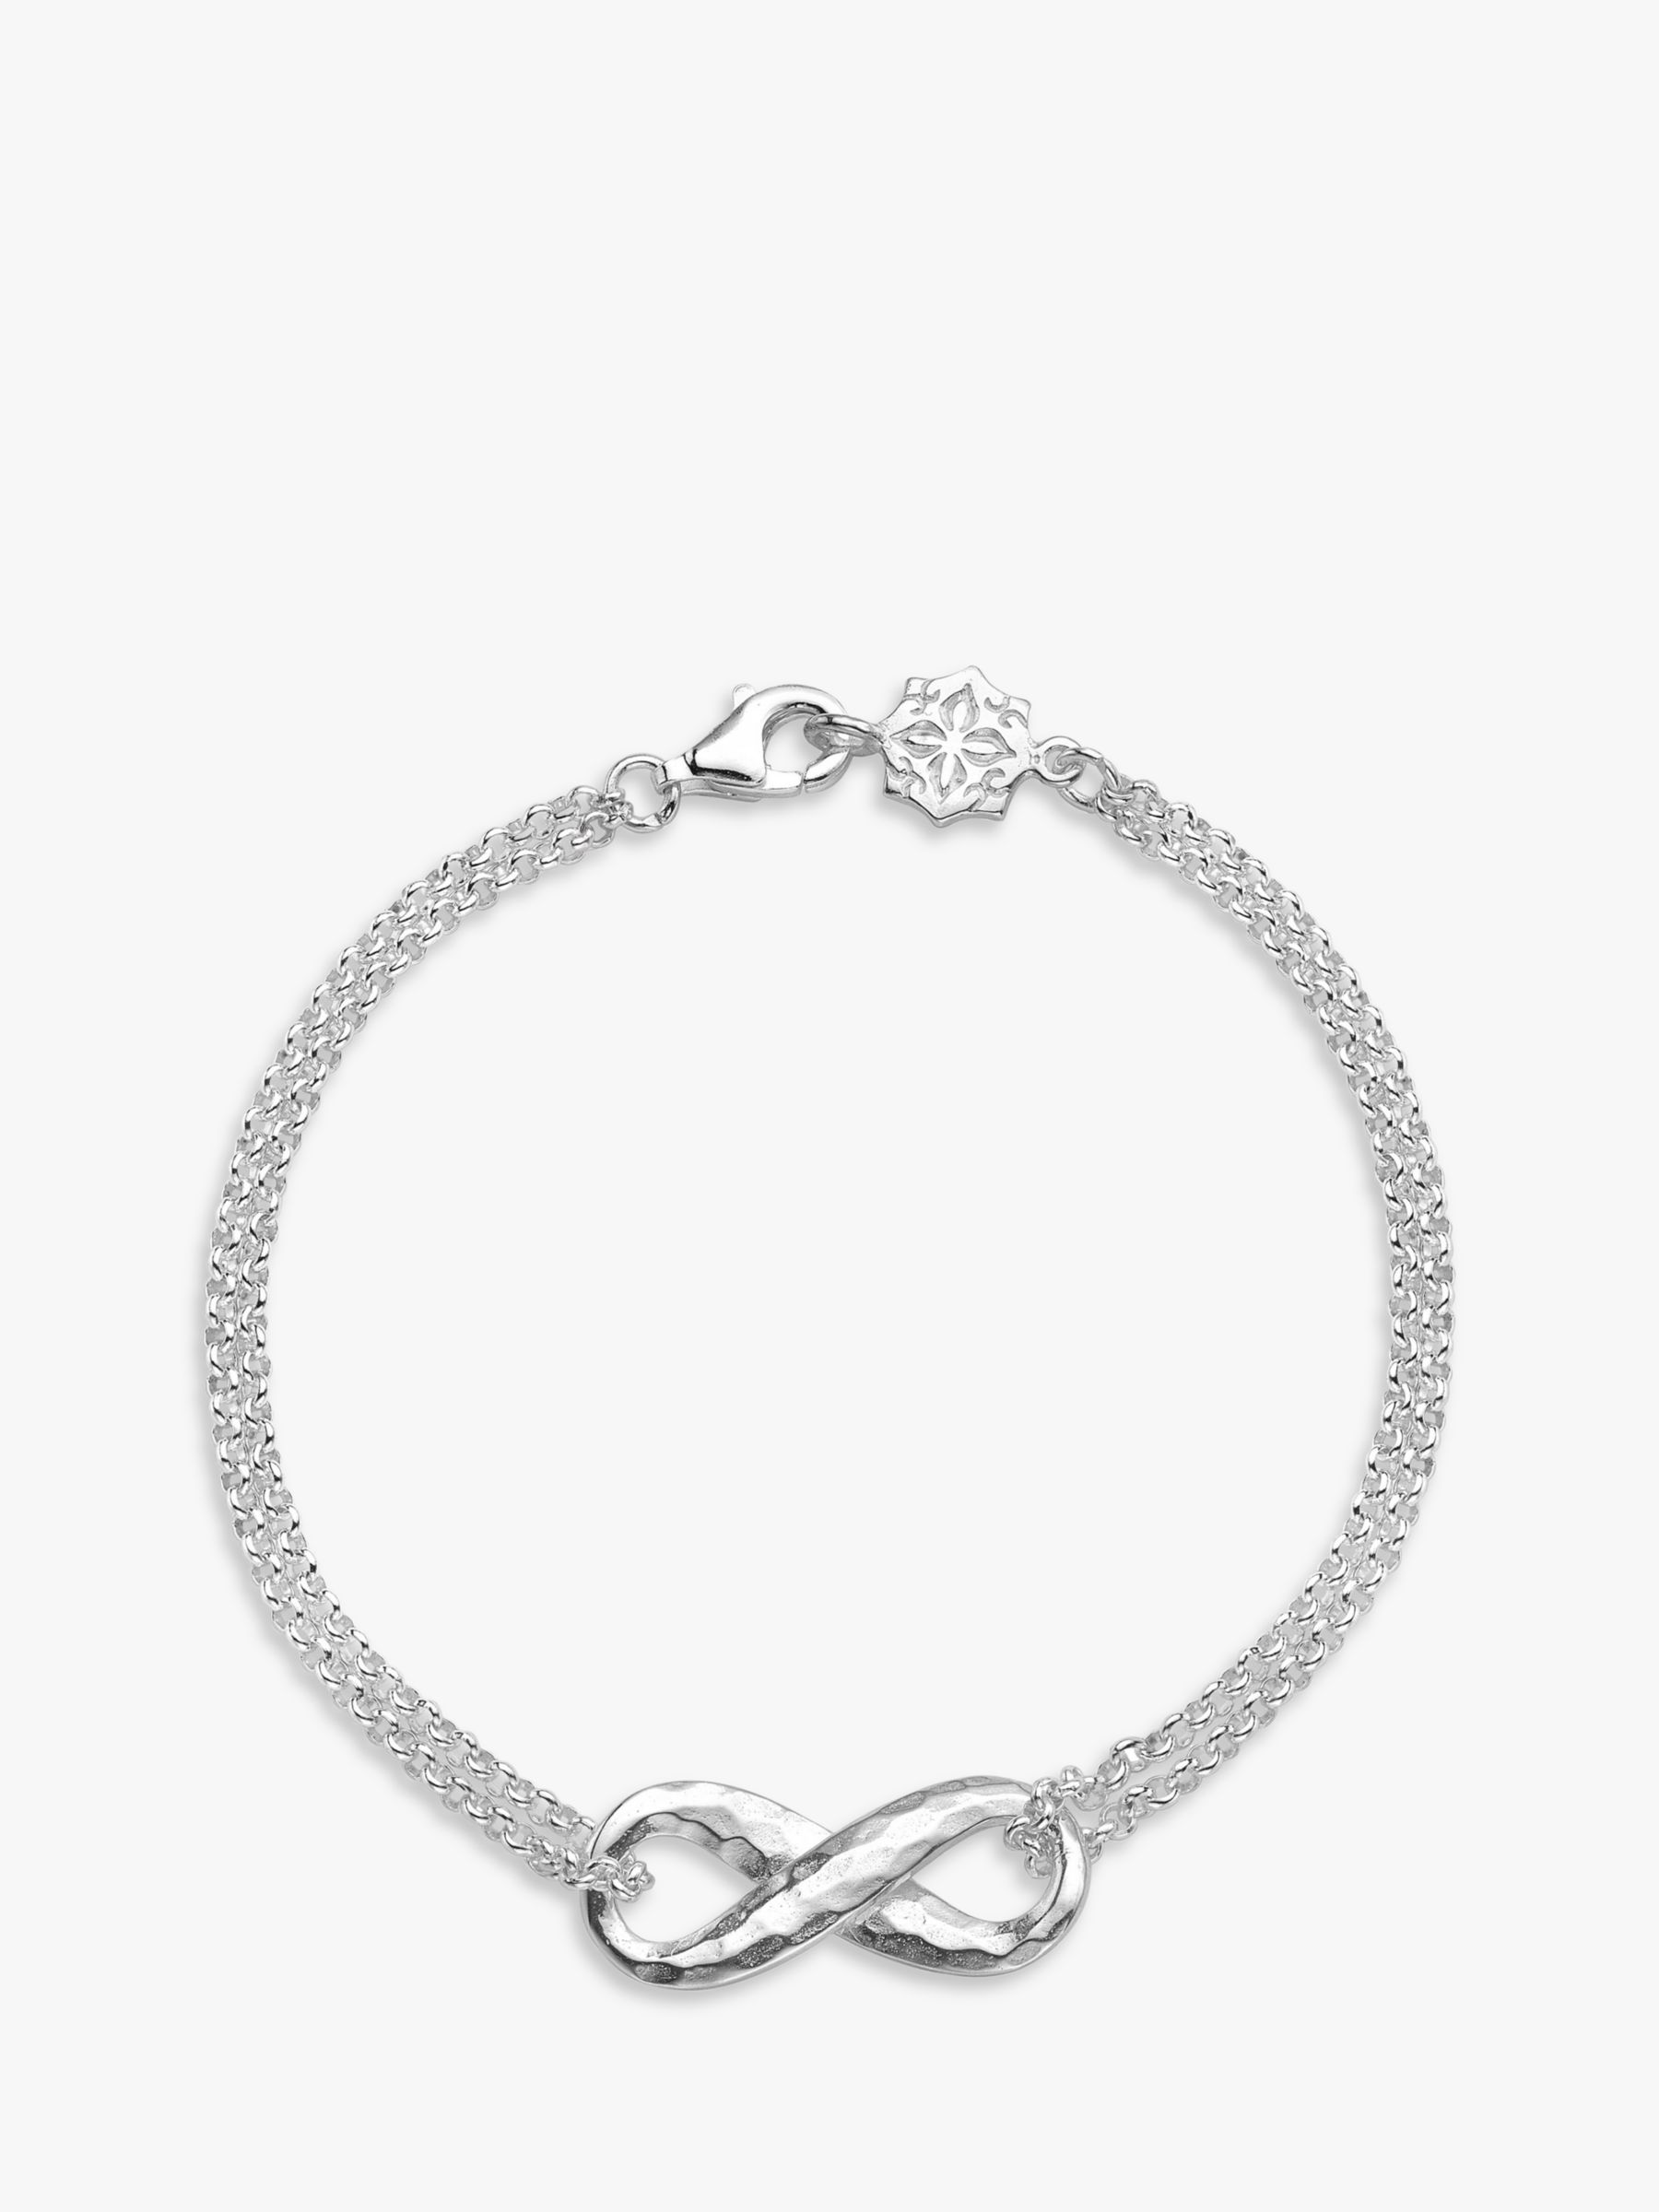 Dower & Hall Dower & Hall Sterling Silver Entwined Infinity Bracelet, Silver